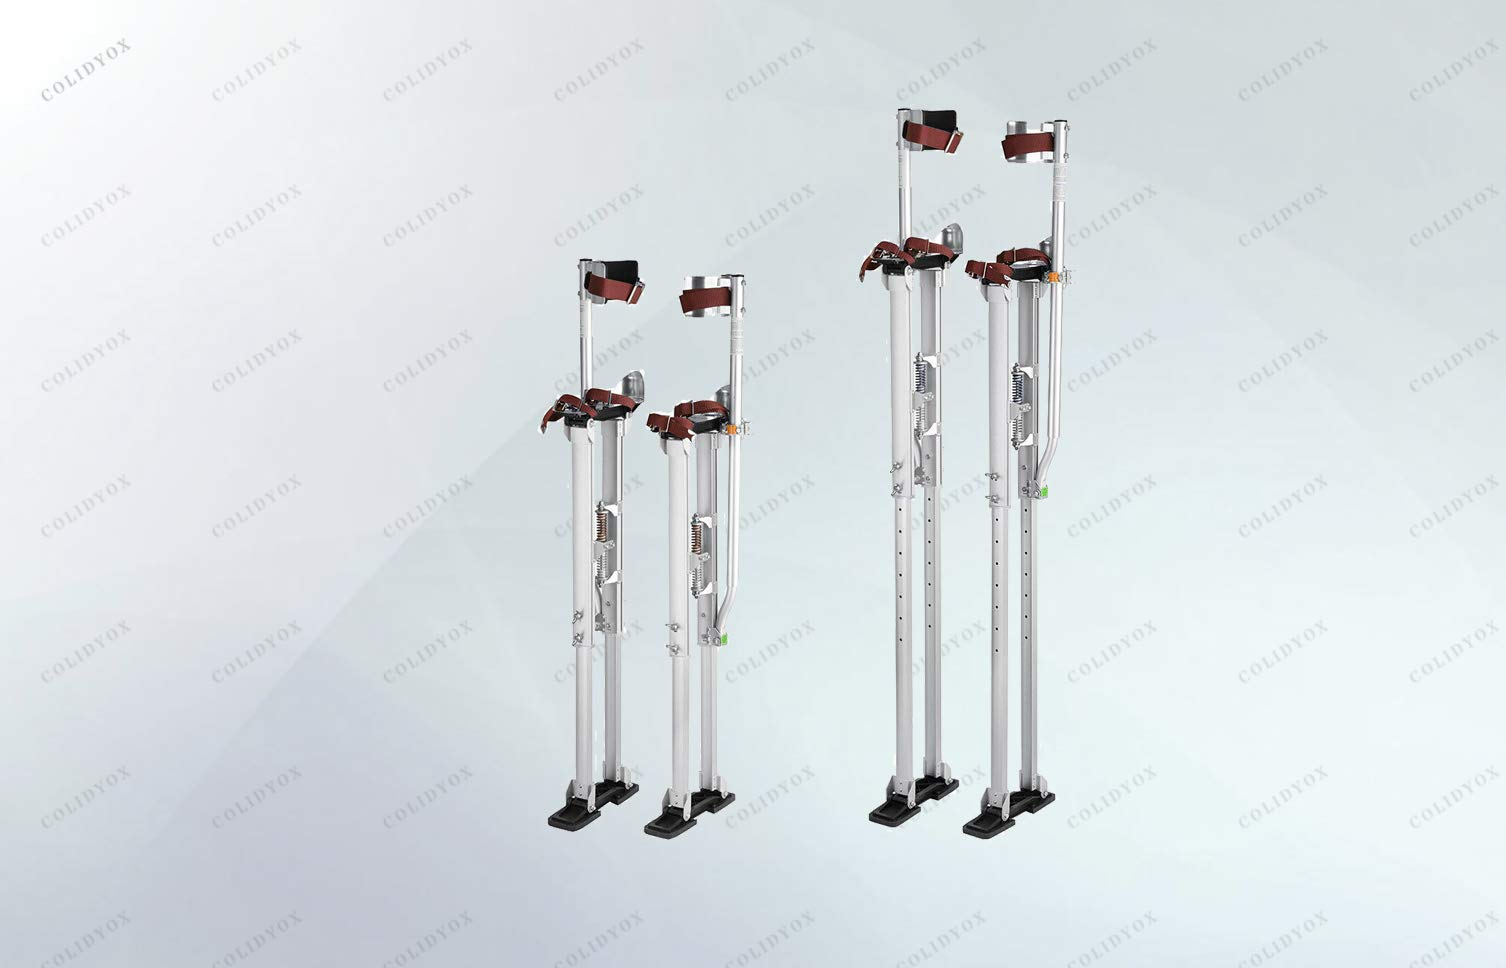 COLIDYOX> Drywall Stilts 36-50 Aluminum Tool Stilt for Painting Painter, 3-Position Heel Bracket fit Different Foot Sizes & Prevent Slippage in Every Direction Perfect for Painting,Electrical,Drop...